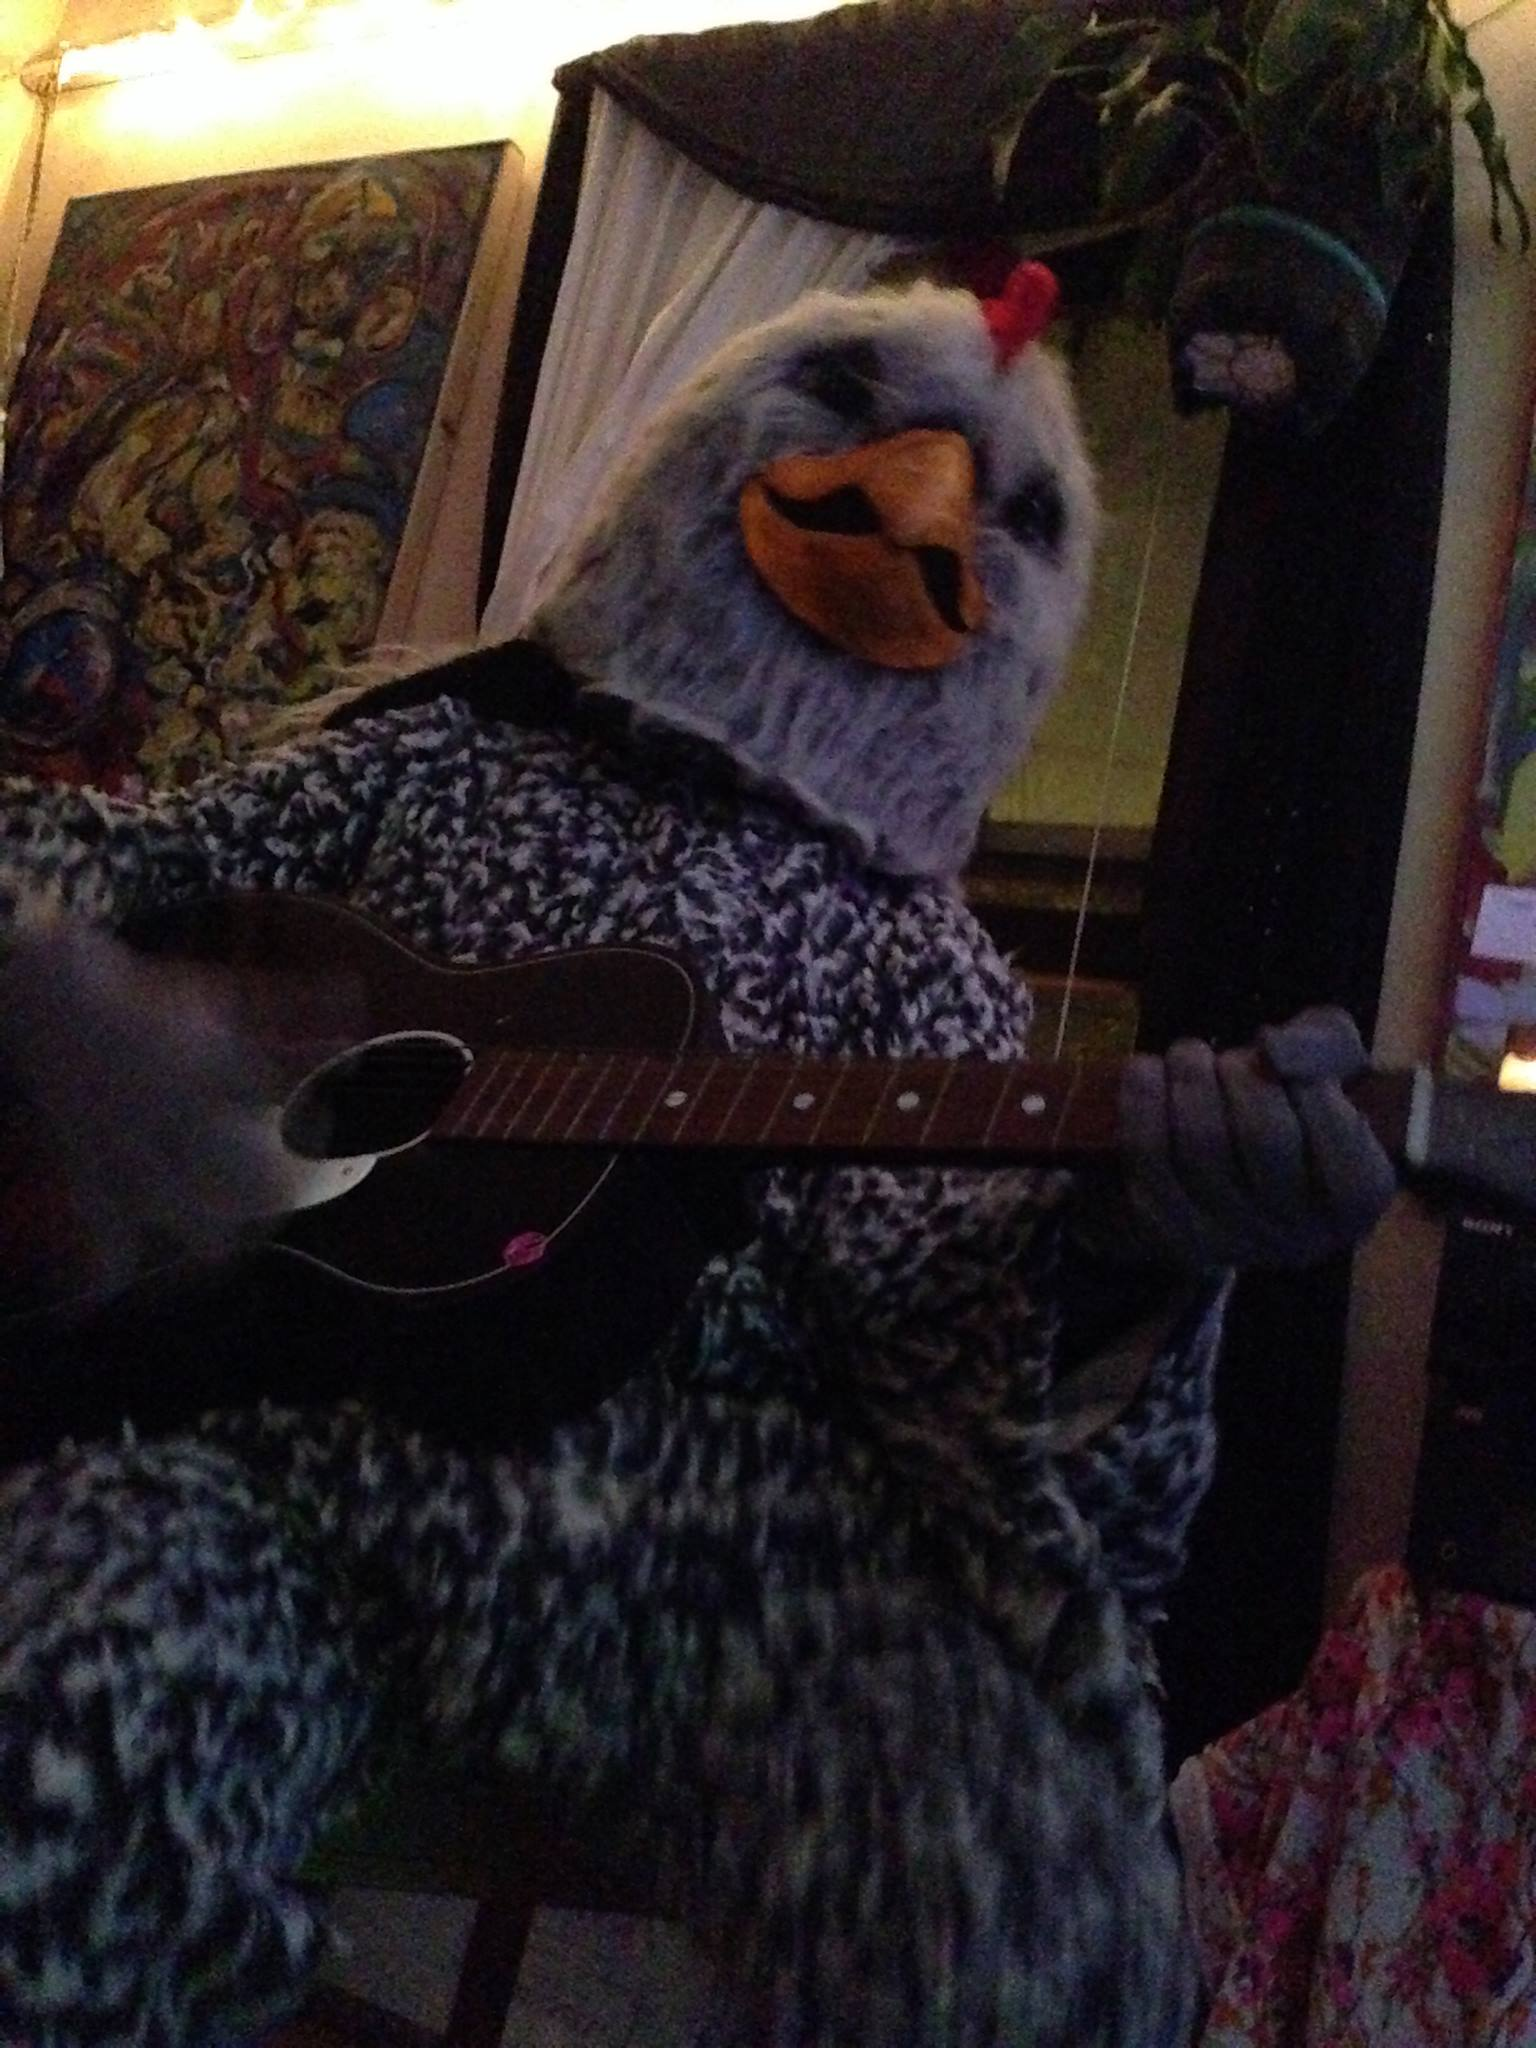 The Grey Chicken at Patches and Gretchen's CD RELEASE & CHICKEN COSTUME PARTY @ EVEN BREAK GALLERY / Minneapolis, Minnesota / OCTOBER 26, 2013 / Photo by Melissa Martin